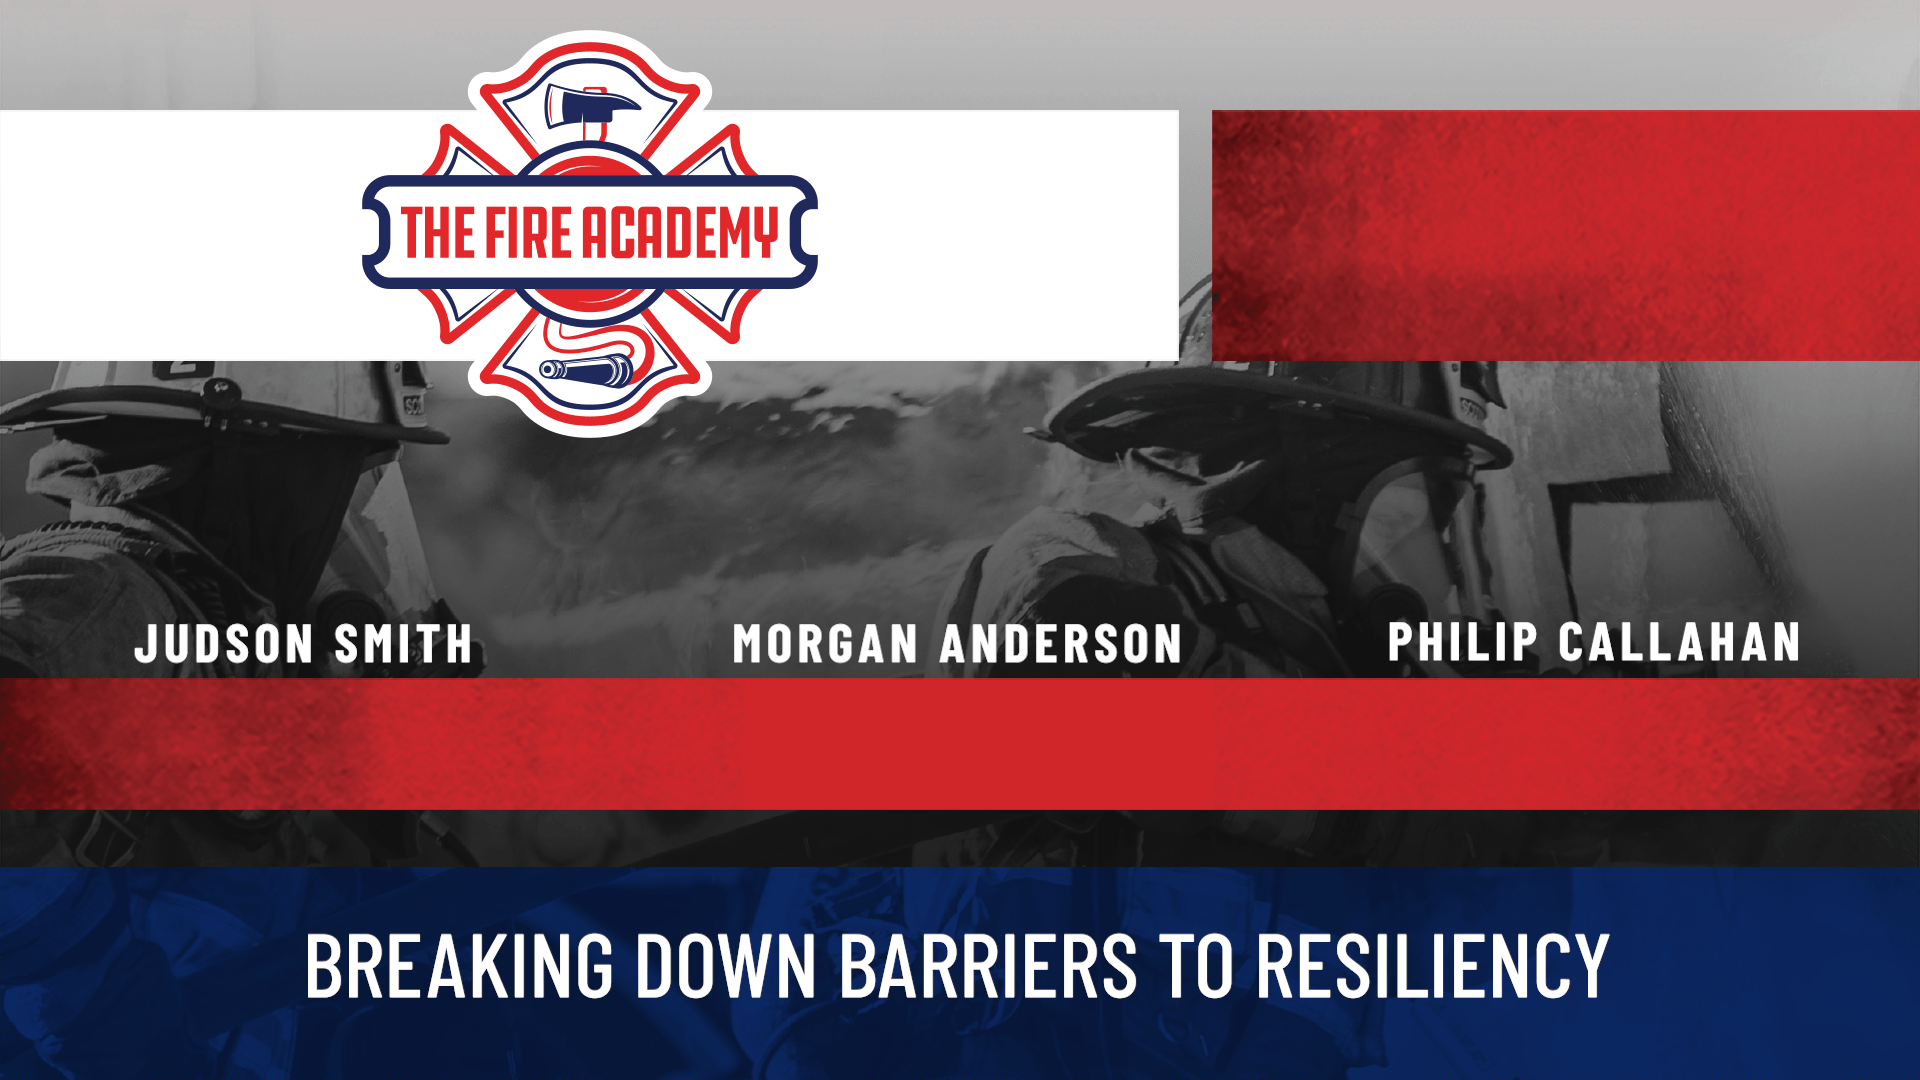 Breaking Down Barriers to Resiliency